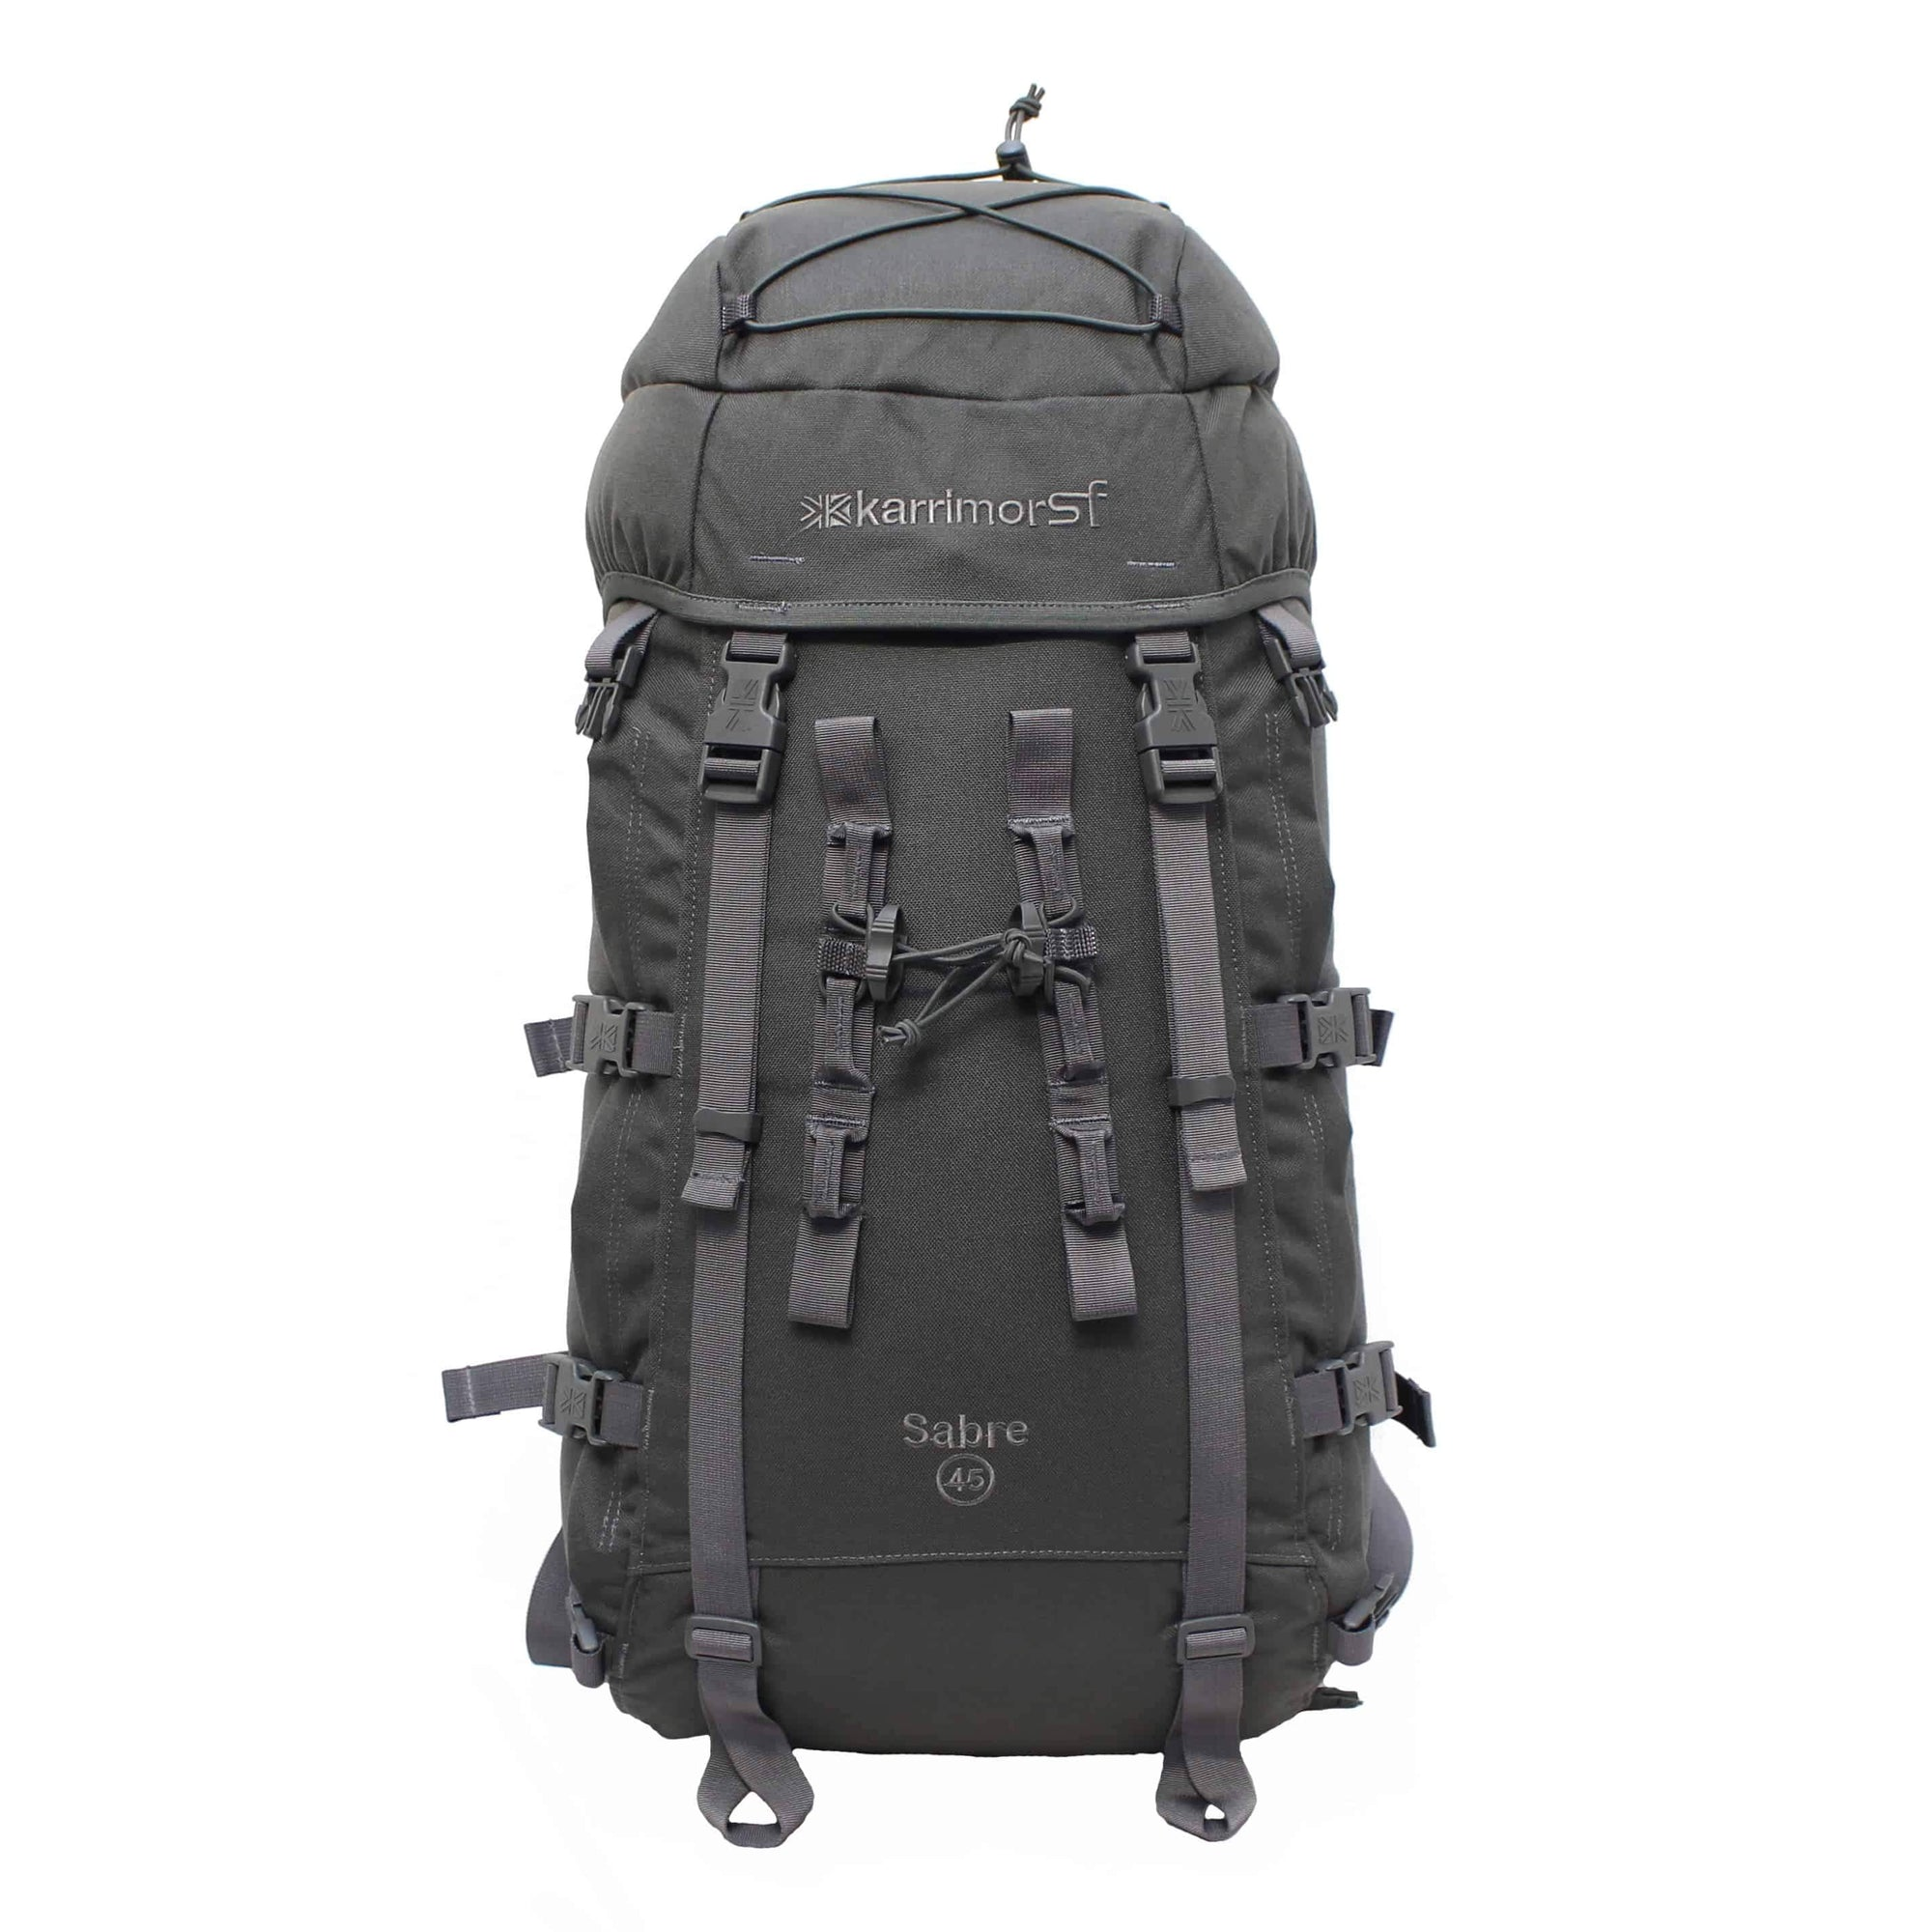 58 Best Outdoor Gear images | Outdoor gear, Backpacking